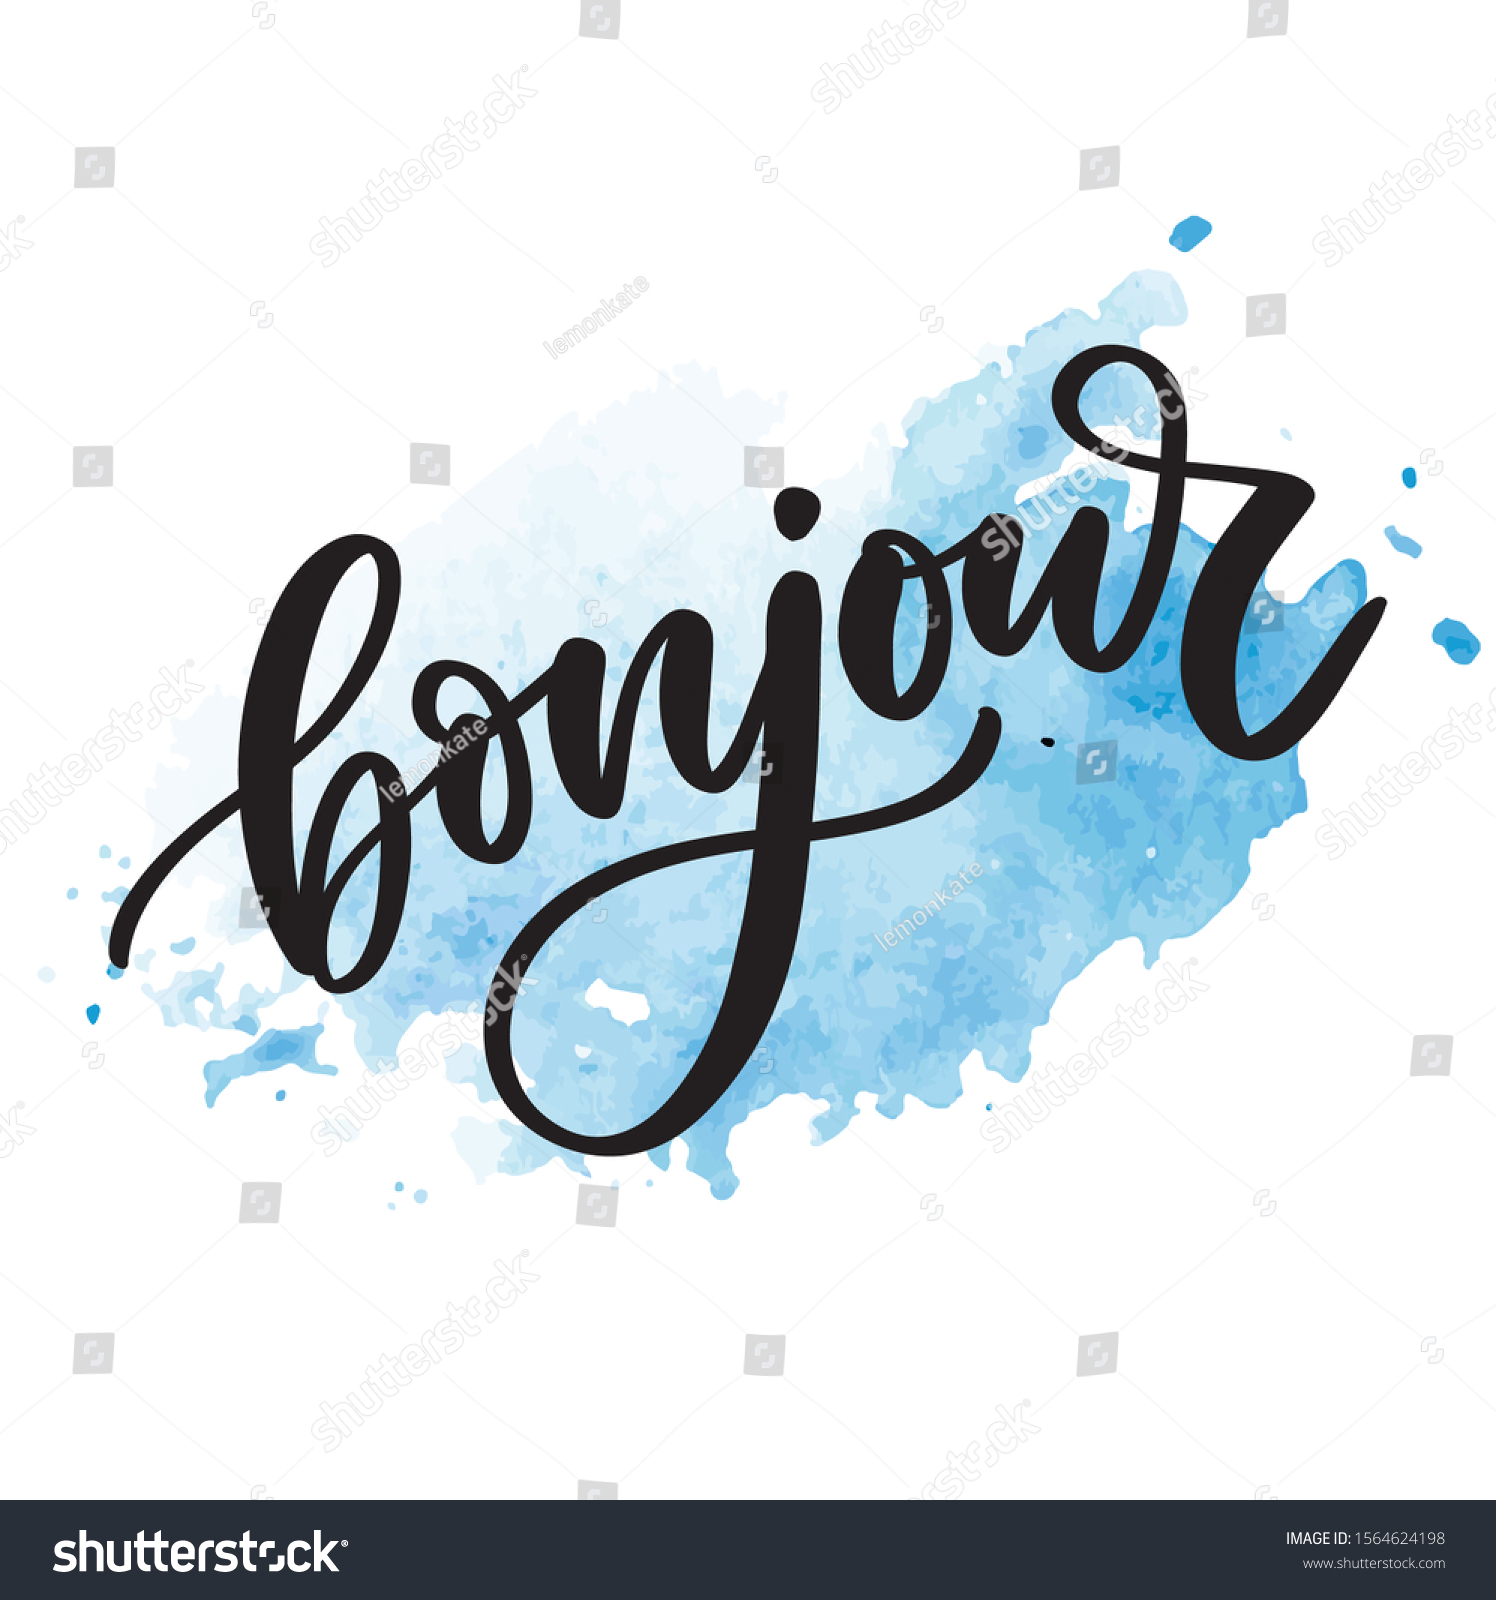 Bonjour Inscription Good Day French Greeting Stock Vector Royalty Free 1564624198